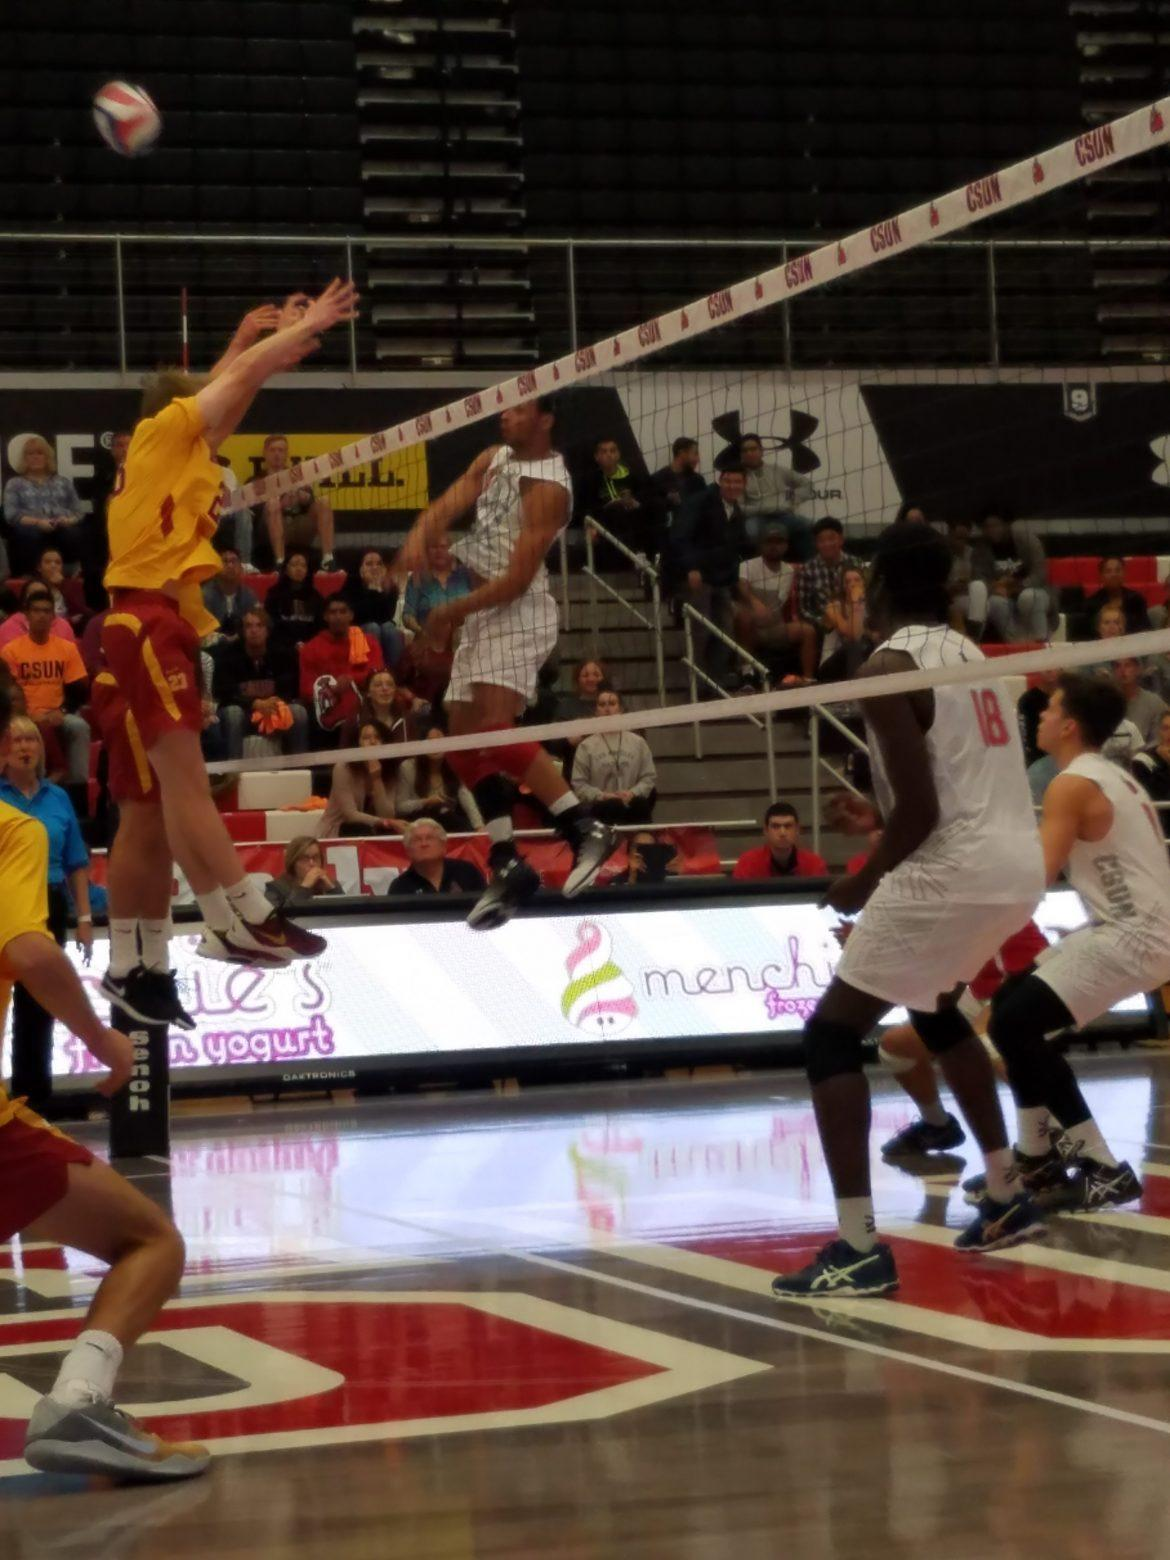 CSUN+volleyball+player+hits+the+ball+across+the+court